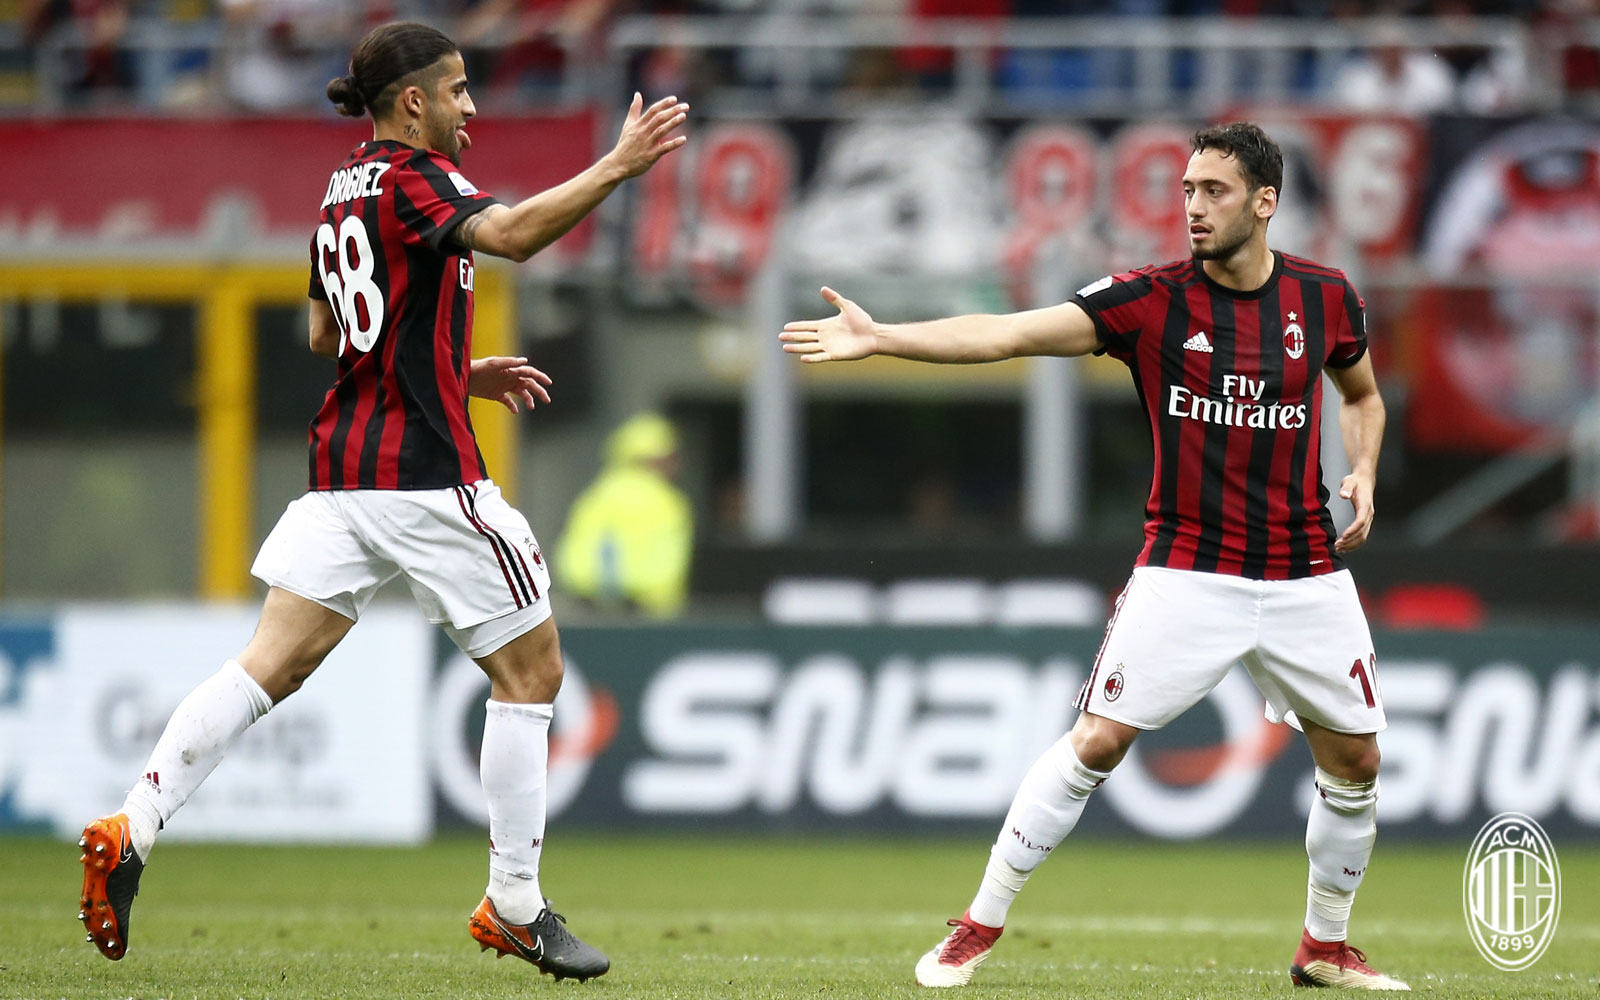 Ricardo Rodriguez and Hakan Çalhanoğlu celebrating during Milan-Fiorentina at Stadio San Siro on May 20, 2018. (@acmilan.com)